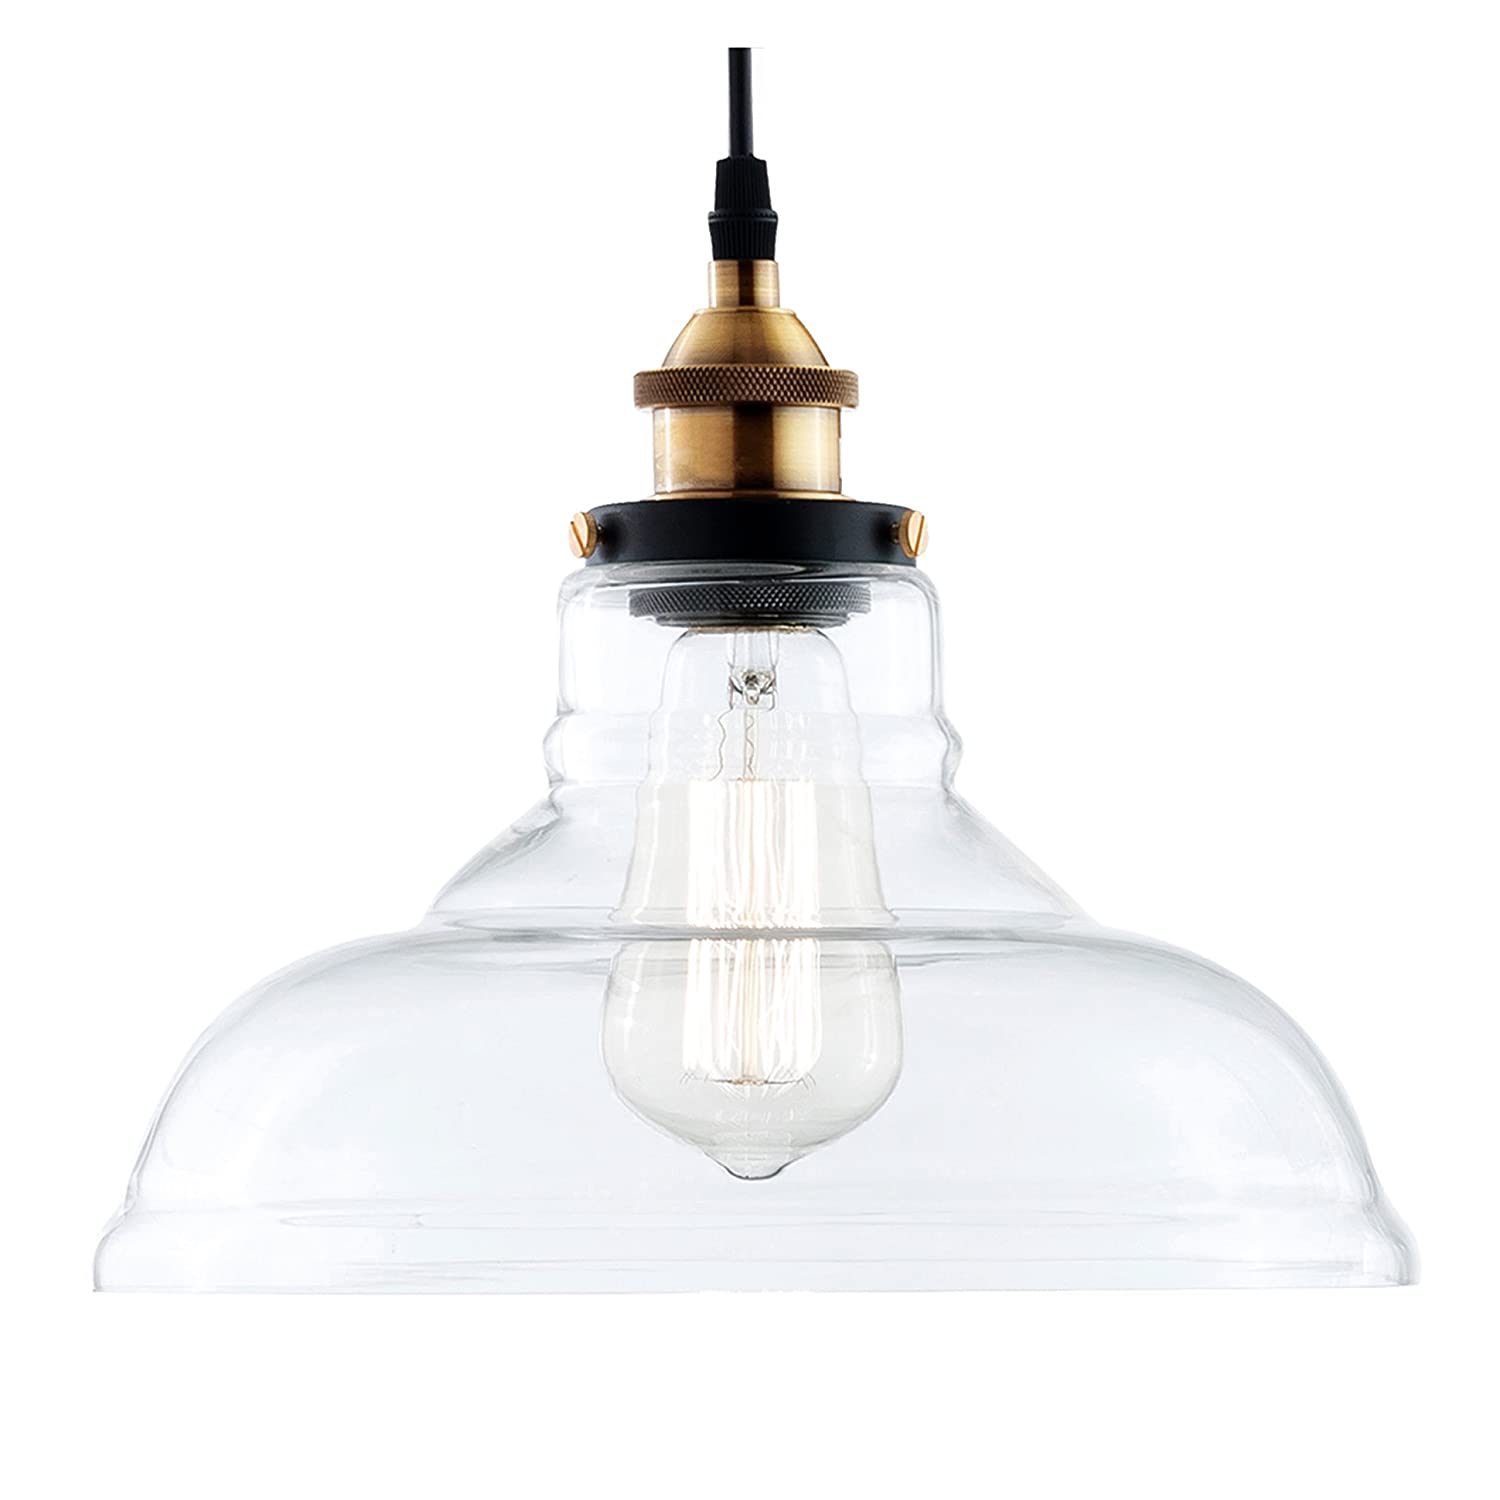 Pendant light fixtures amazon lighting ceiling fans light society classon edison pendant light clear glass shade with brushed bronze finish vintage aloadofball Gallery